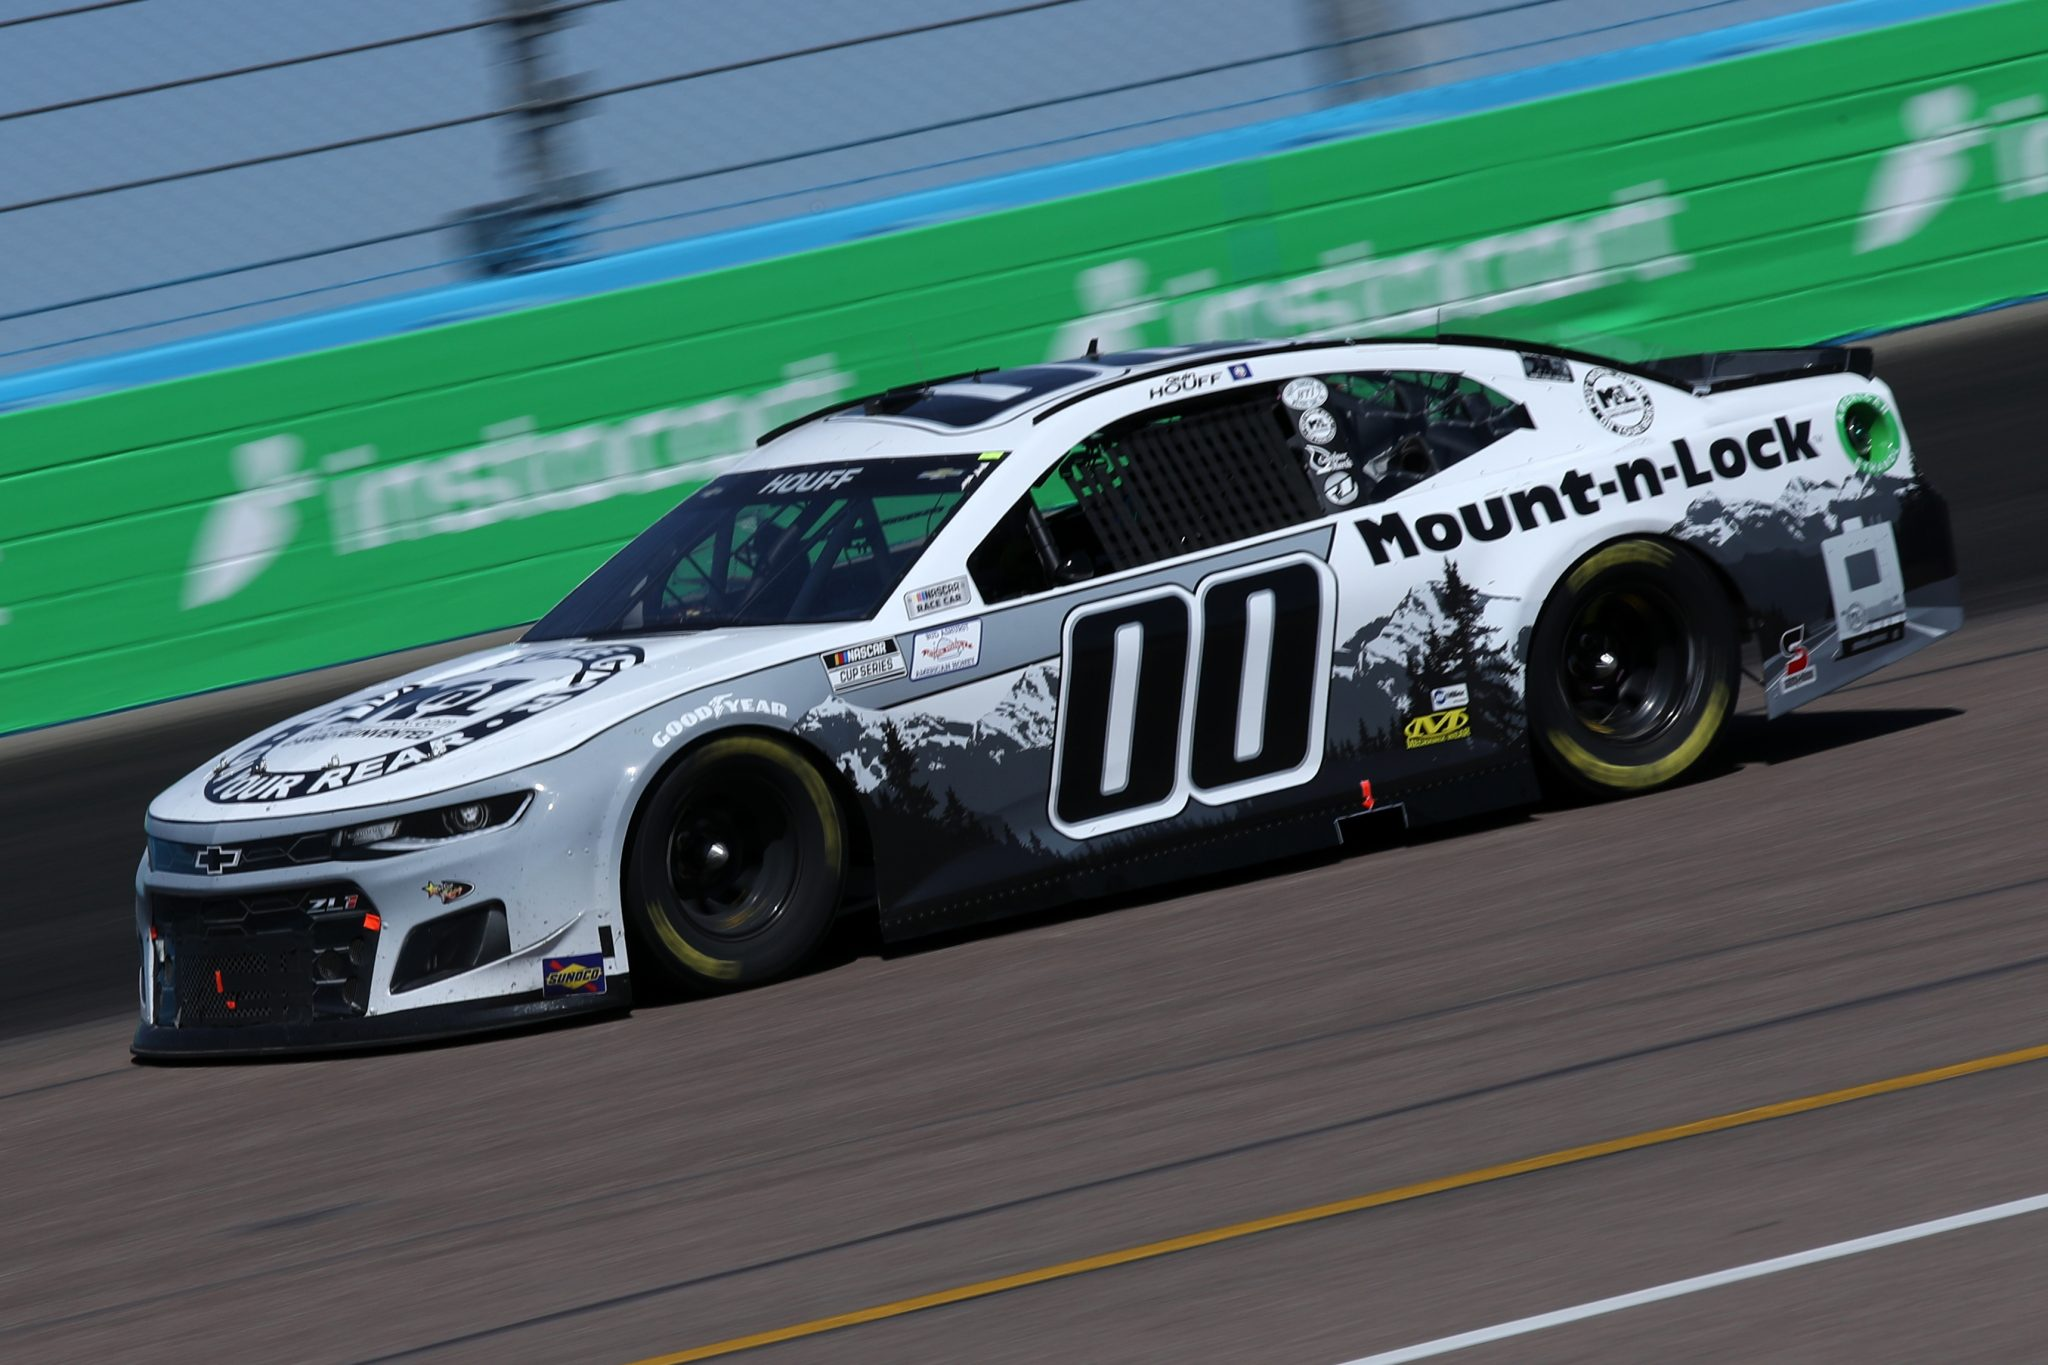 AVONDALE, ARIZONA - MARCH 14: Quin Houff, driver of the #00 Mount-N-Lock Chevrolet, drives during the NASCAR Cup Series Instacart 500 at Phoenix Raceway on March 14, 2021 in Avondale, Arizona. (Photo by Sean Gardner/Getty Images) | Getty Images